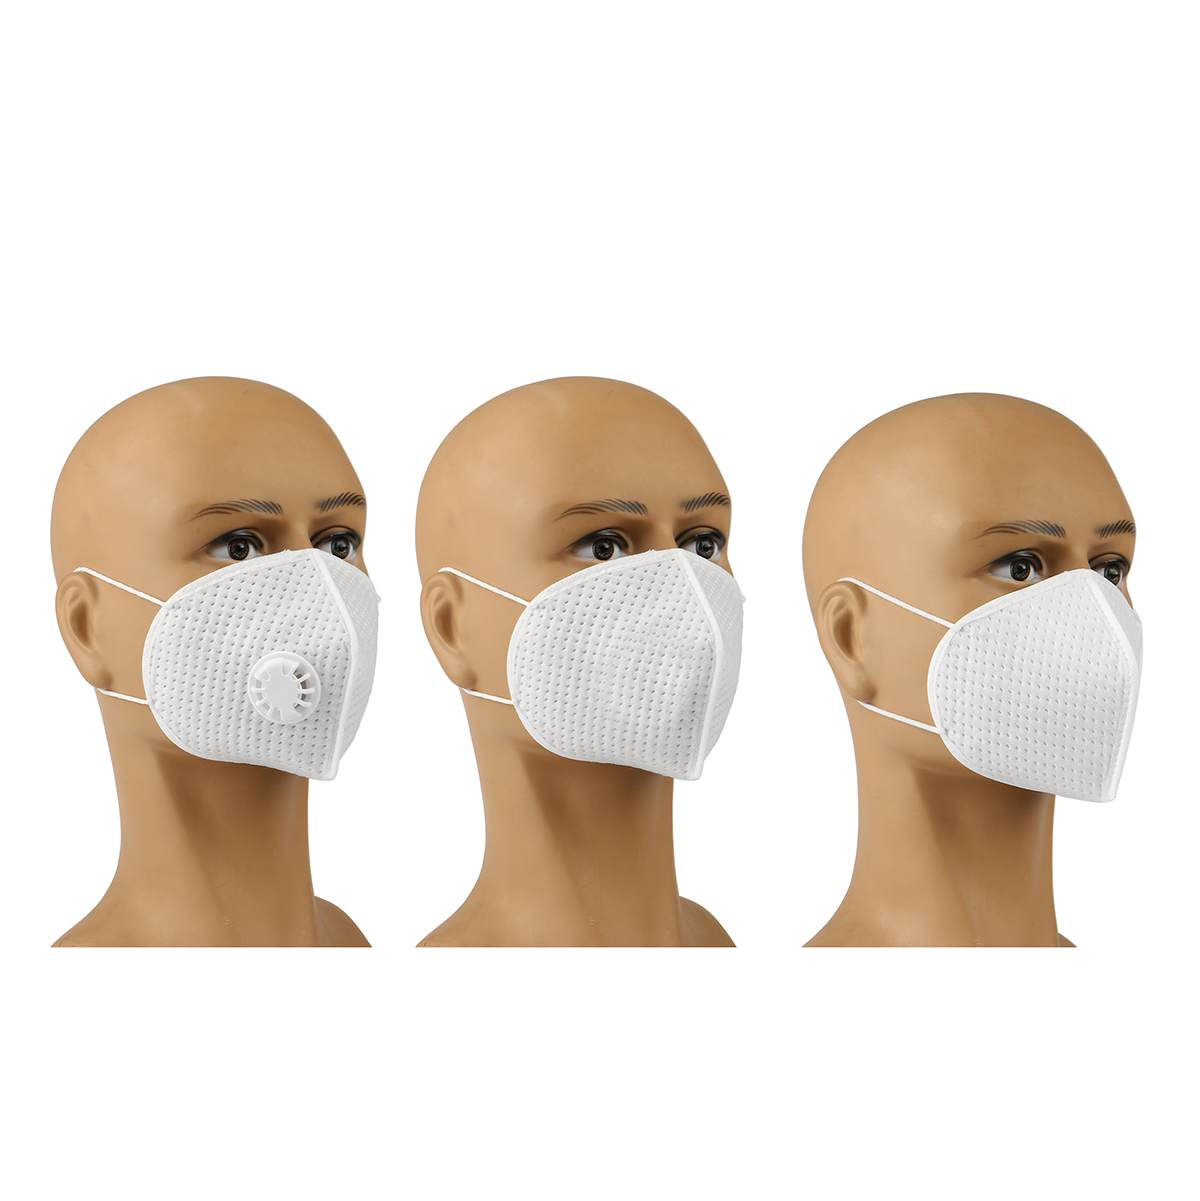 Reusable N95 Mask with Respirator Valve in Thicken Layers Design for Protection from Flu and Virus 8